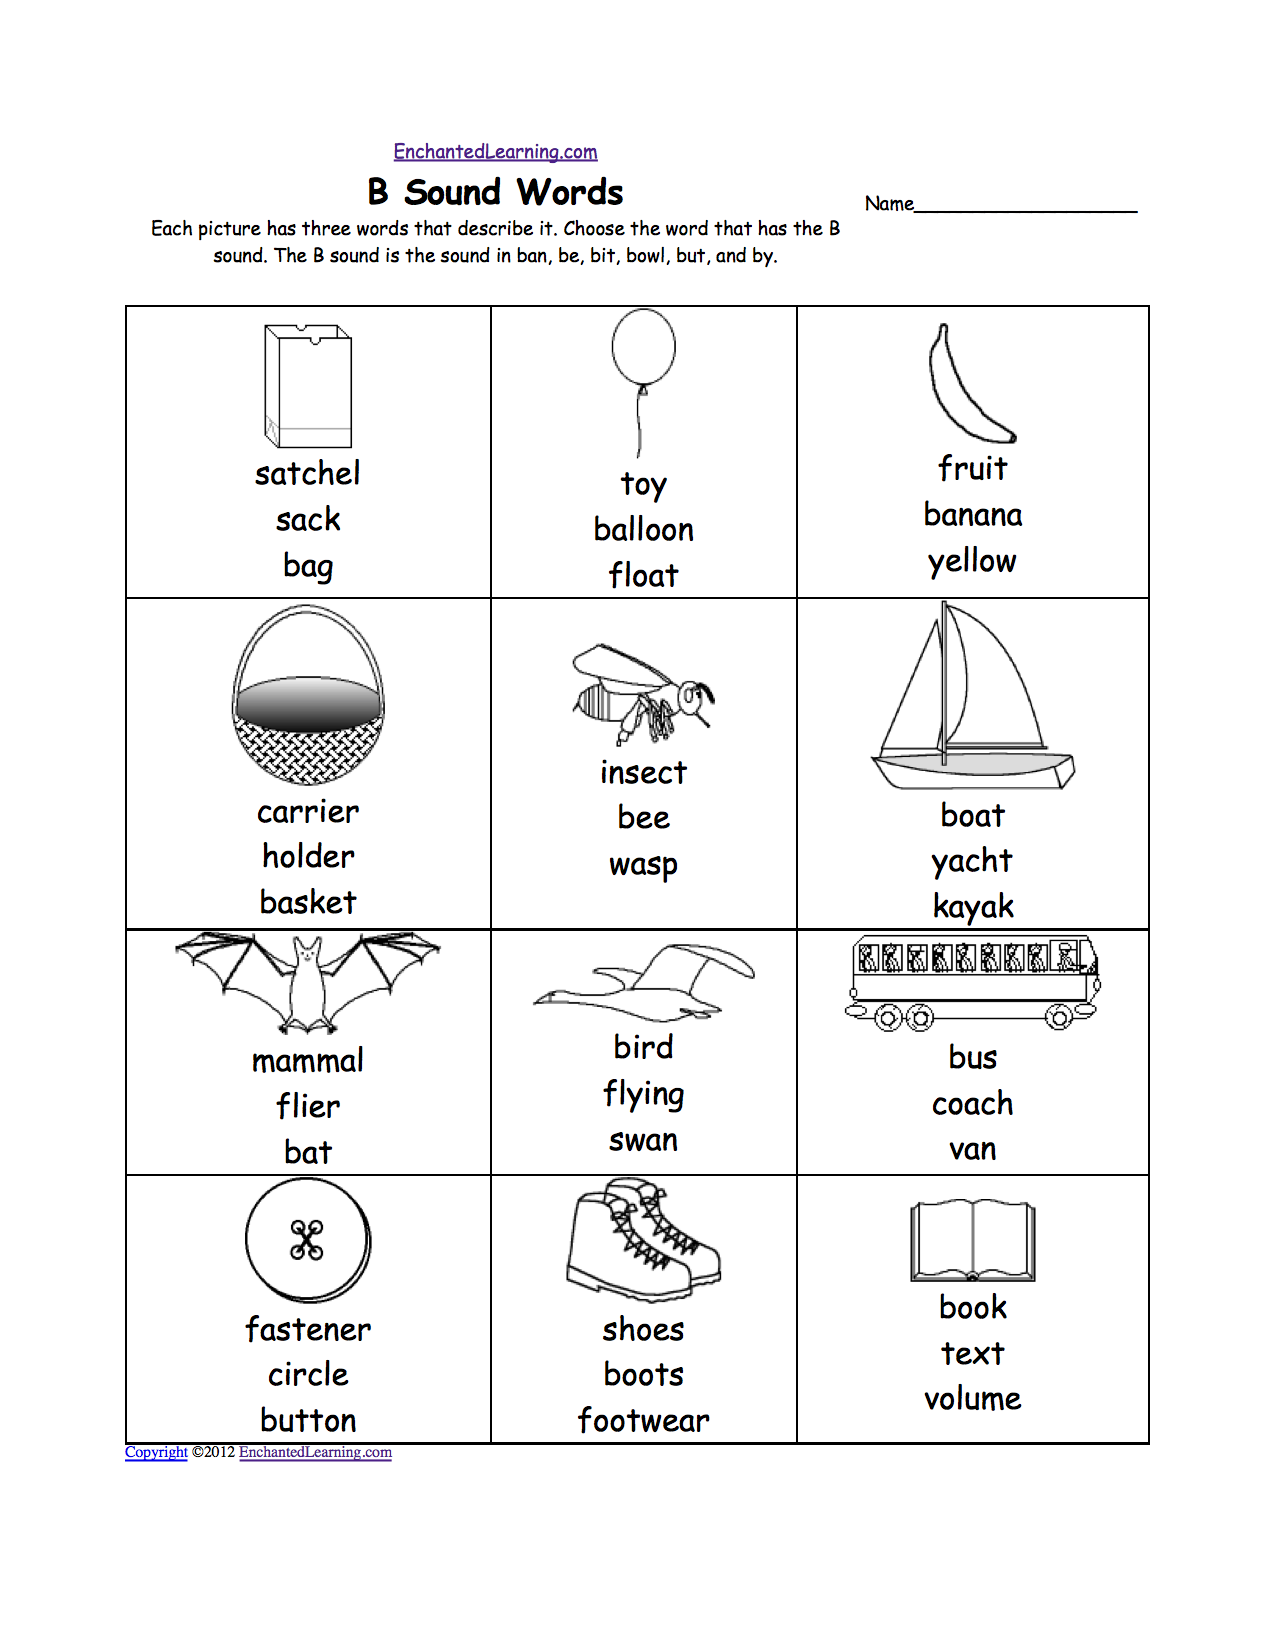 Weirdmailus  Marvelous Phonics Worksheets Multiple Choice Worksheets To Print  With Exciting Quotbquot Sound Phonics Worksheet Multiple Choice Each Picture Has Three Words That Describe It Choose The Word That Has A Quotbquot Sound The Quotbquot Sound Is The Sound  With Easy On The Eye First Day Of Kindergarten Worksheets Also Th Words Worksheet In Addition Bill Nye Erosion Video Worksheet And Family And Consumer Science Worksheets As Well As Mlk Worksheet Additionally Fifth Grade Division Worksheets From Enchantedlearningcom With Weirdmailus  Exciting Phonics Worksheets Multiple Choice Worksheets To Print  With Easy On The Eye Quotbquot Sound Phonics Worksheet Multiple Choice Each Picture Has Three Words That Describe It Choose The Word That Has A Quotbquot Sound The Quotbquot Sound Is The Sound  And Marvelous First Day Of Kindergarten Worksheets Also Th Words Worksheet In Addition Bill Nye Erosion Video Worksheet From Enchantedlearningcom